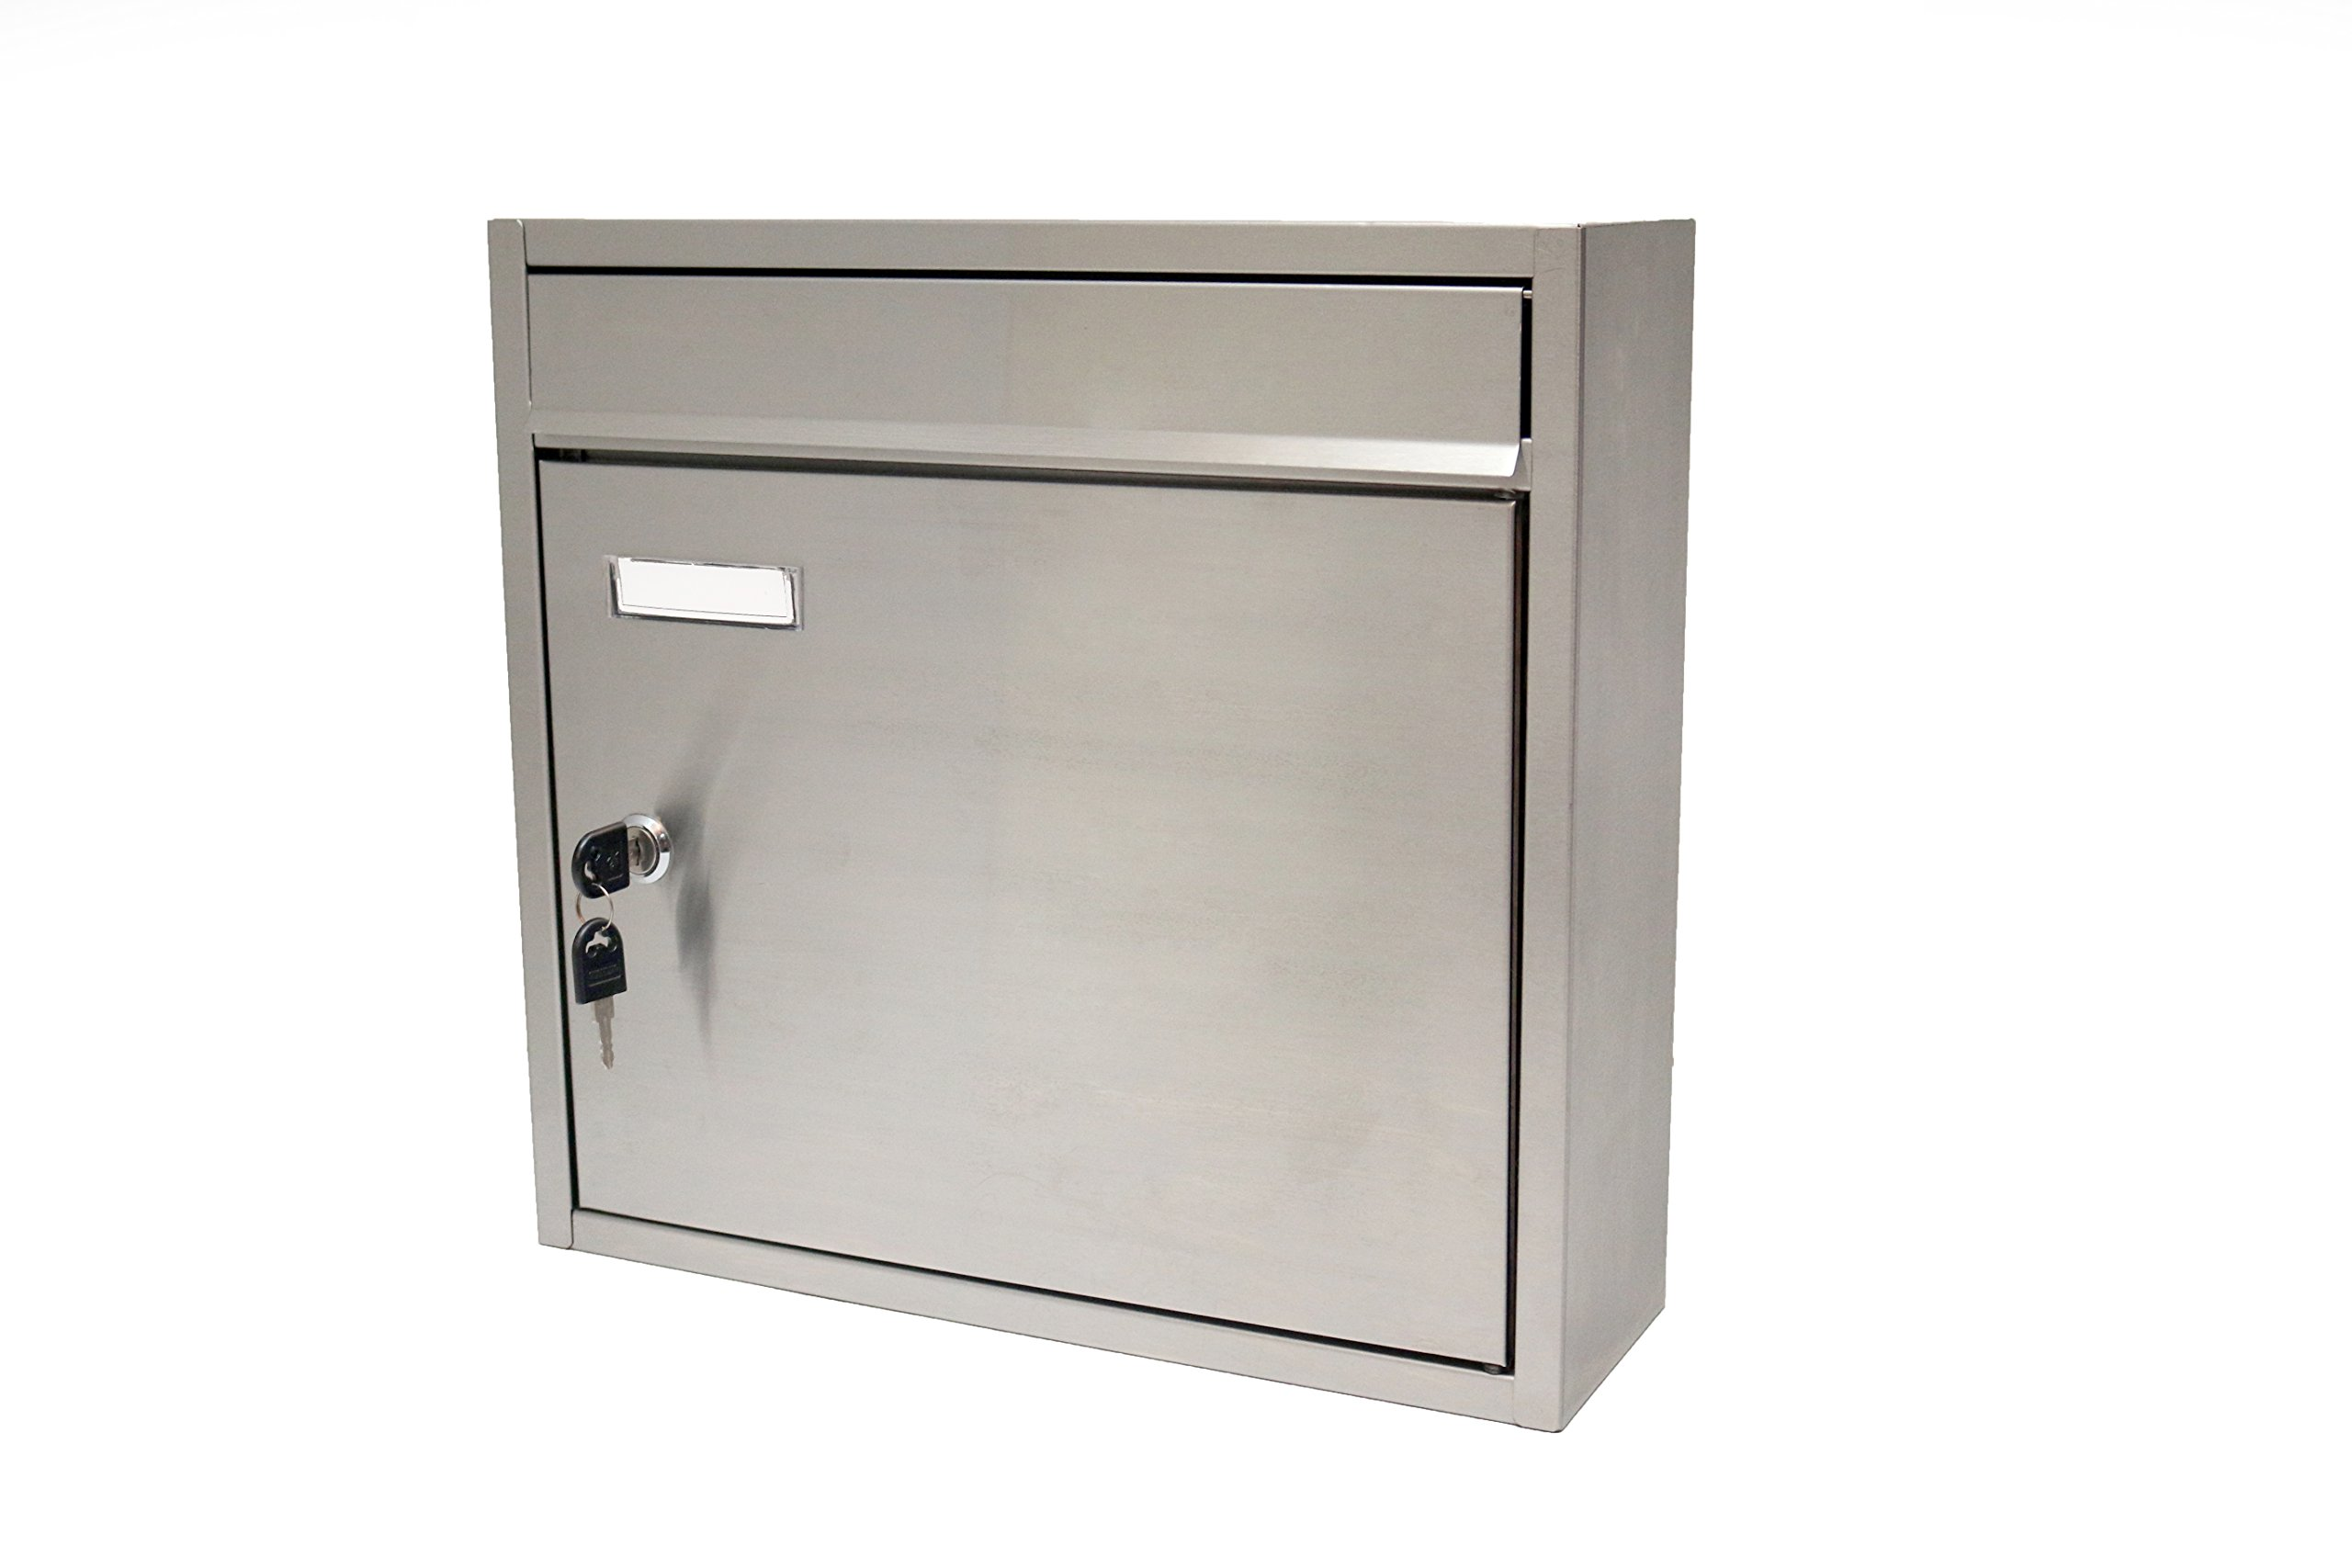 Stetson Hardware, stainless steel lockable wall mount mailbox.